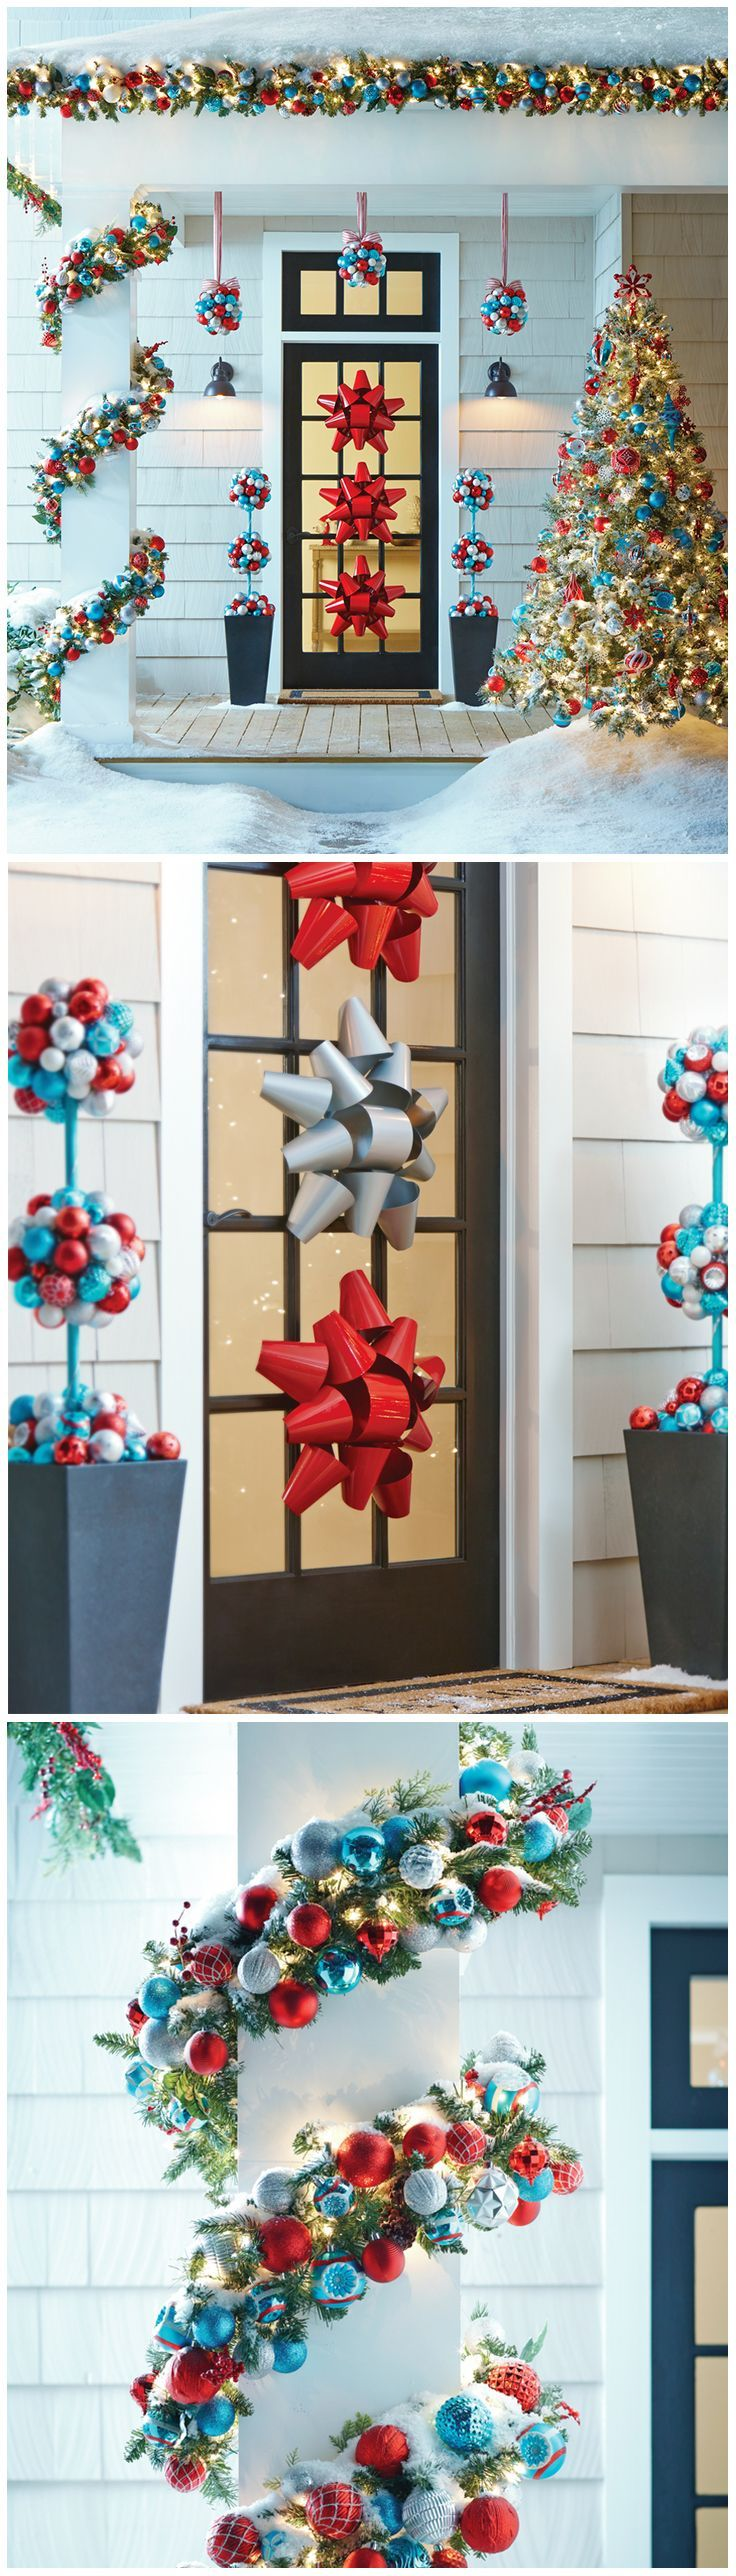 25 Best Ideas About Outdoor Christmas Wreaths On Home Decorators Catalog Best Ideas of Home Decor and Design [homedecoratorscatalog.us]